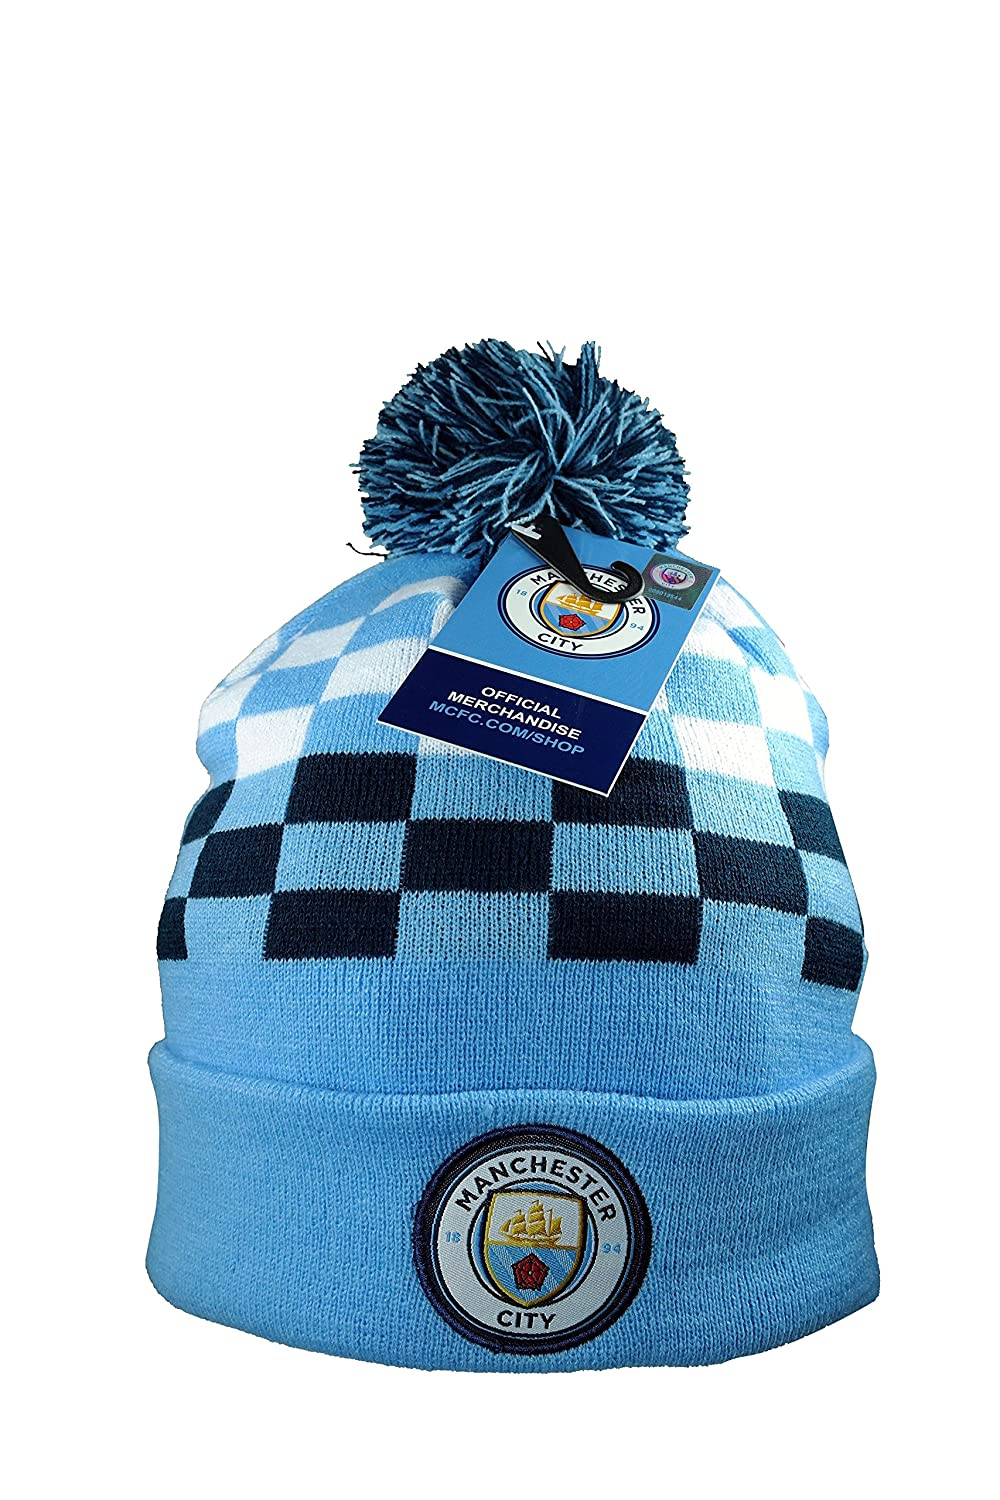 Manchester City F.C. Authentic Official Licensed Product Soccer Beanie a54dfb837c4